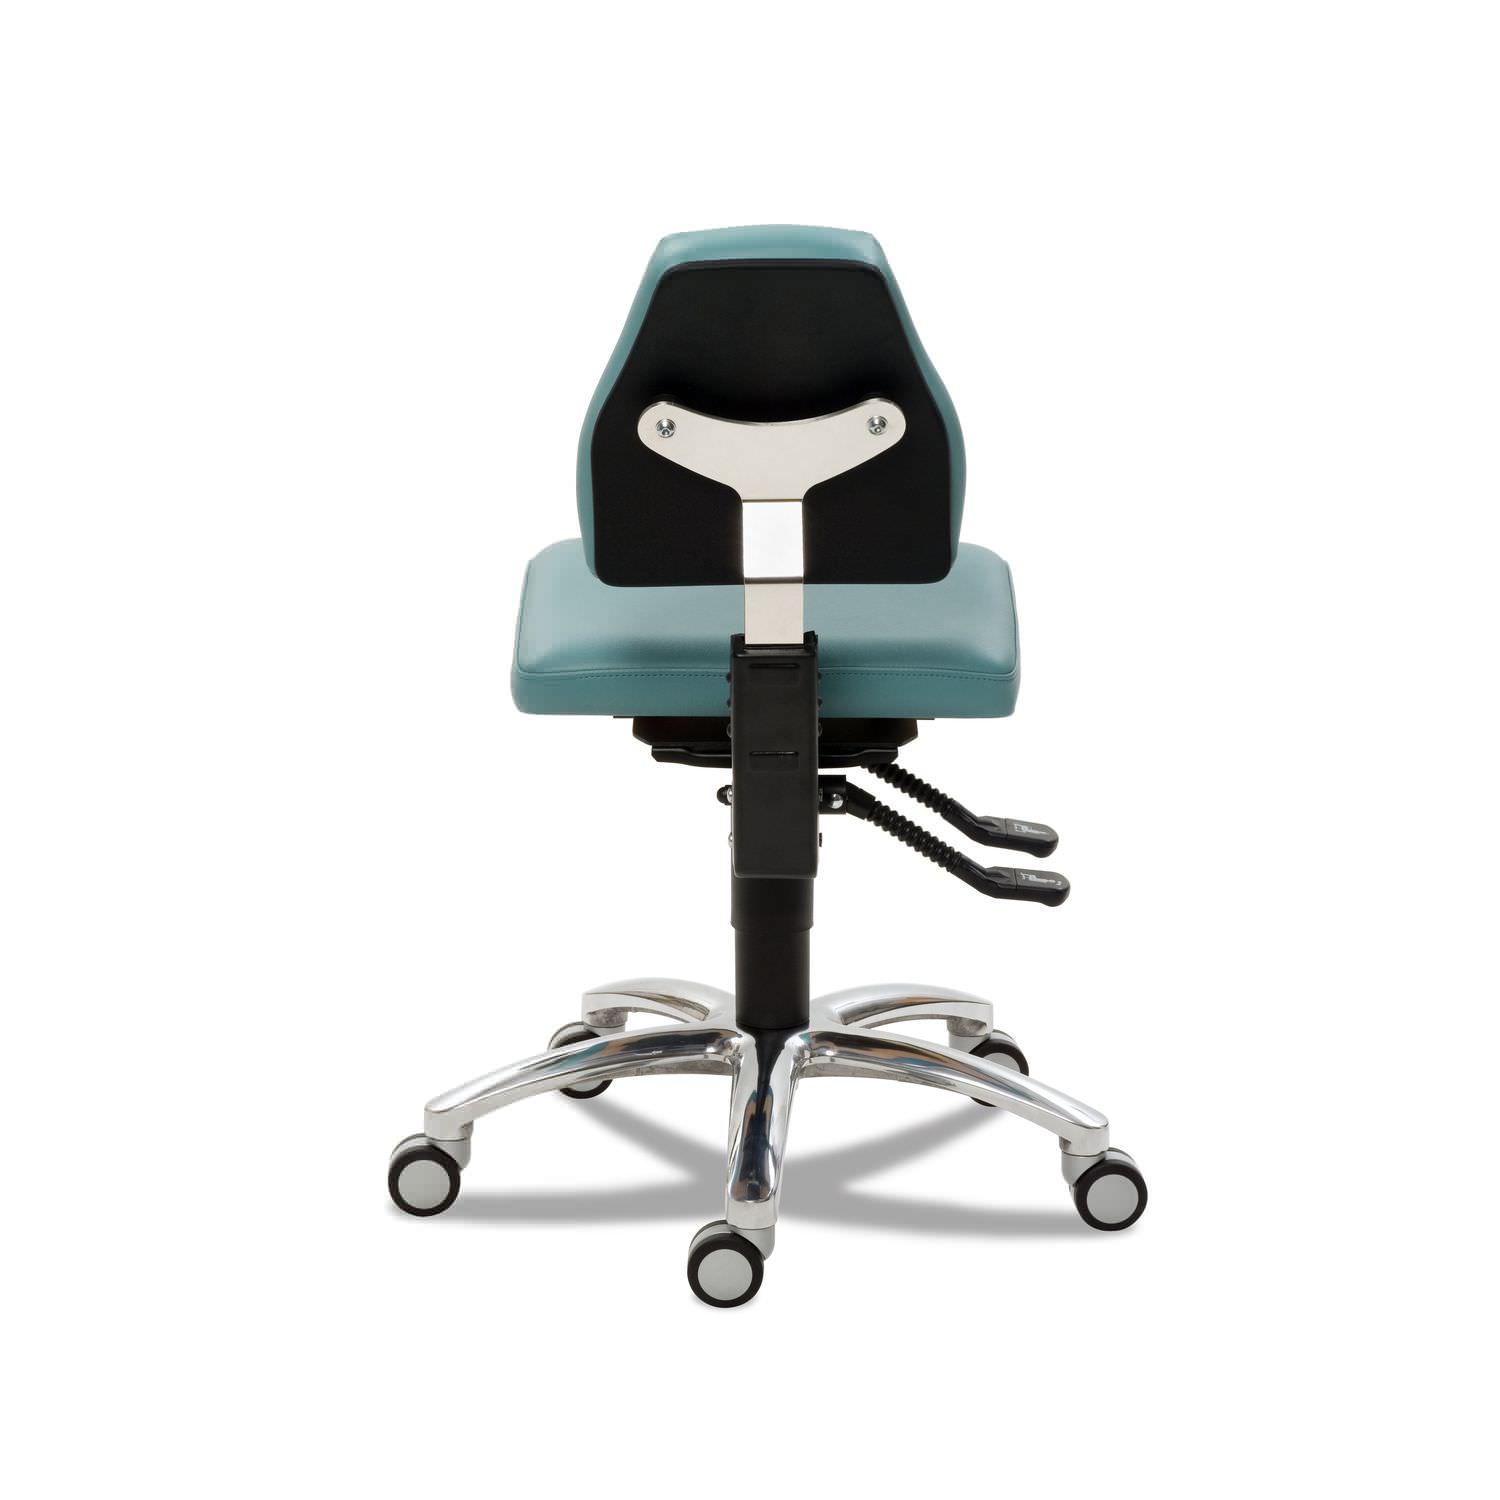 ... Doctoru0027s office stool / height-adjustable / with backrest / on casters ComfortMove Medical 3 ...  sc 1 st  MedicalExpo & Doctoru0027s office stool / height-adjustable / with backrest / on ... islam-shia.org